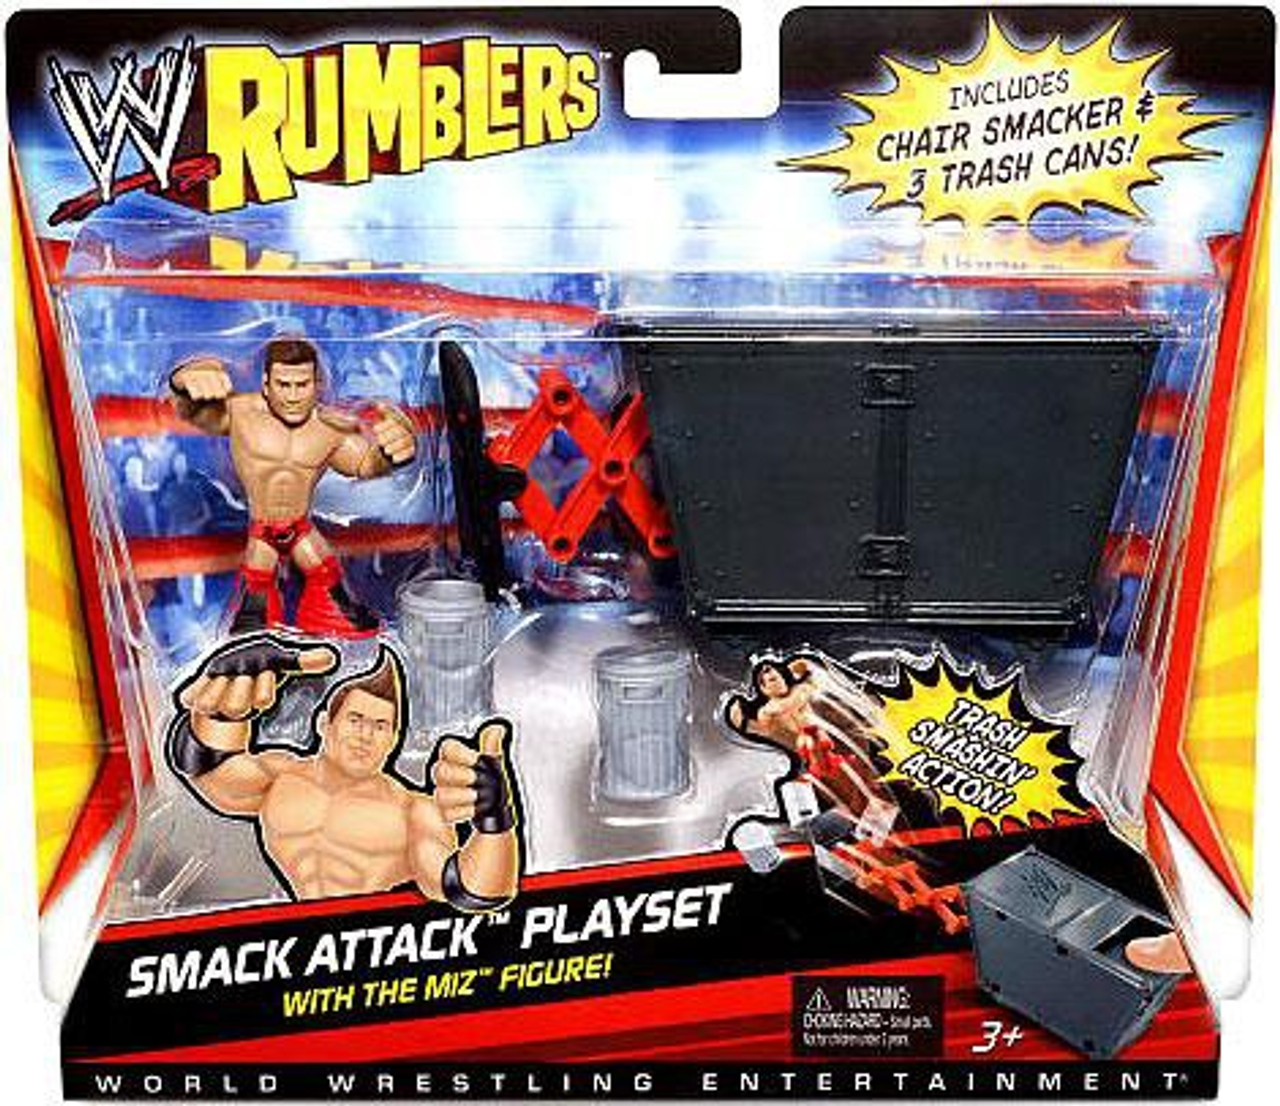 WWE Wrestling Rumblers Series 1 Smack Attack Mini Figure Playset [With The Miz]